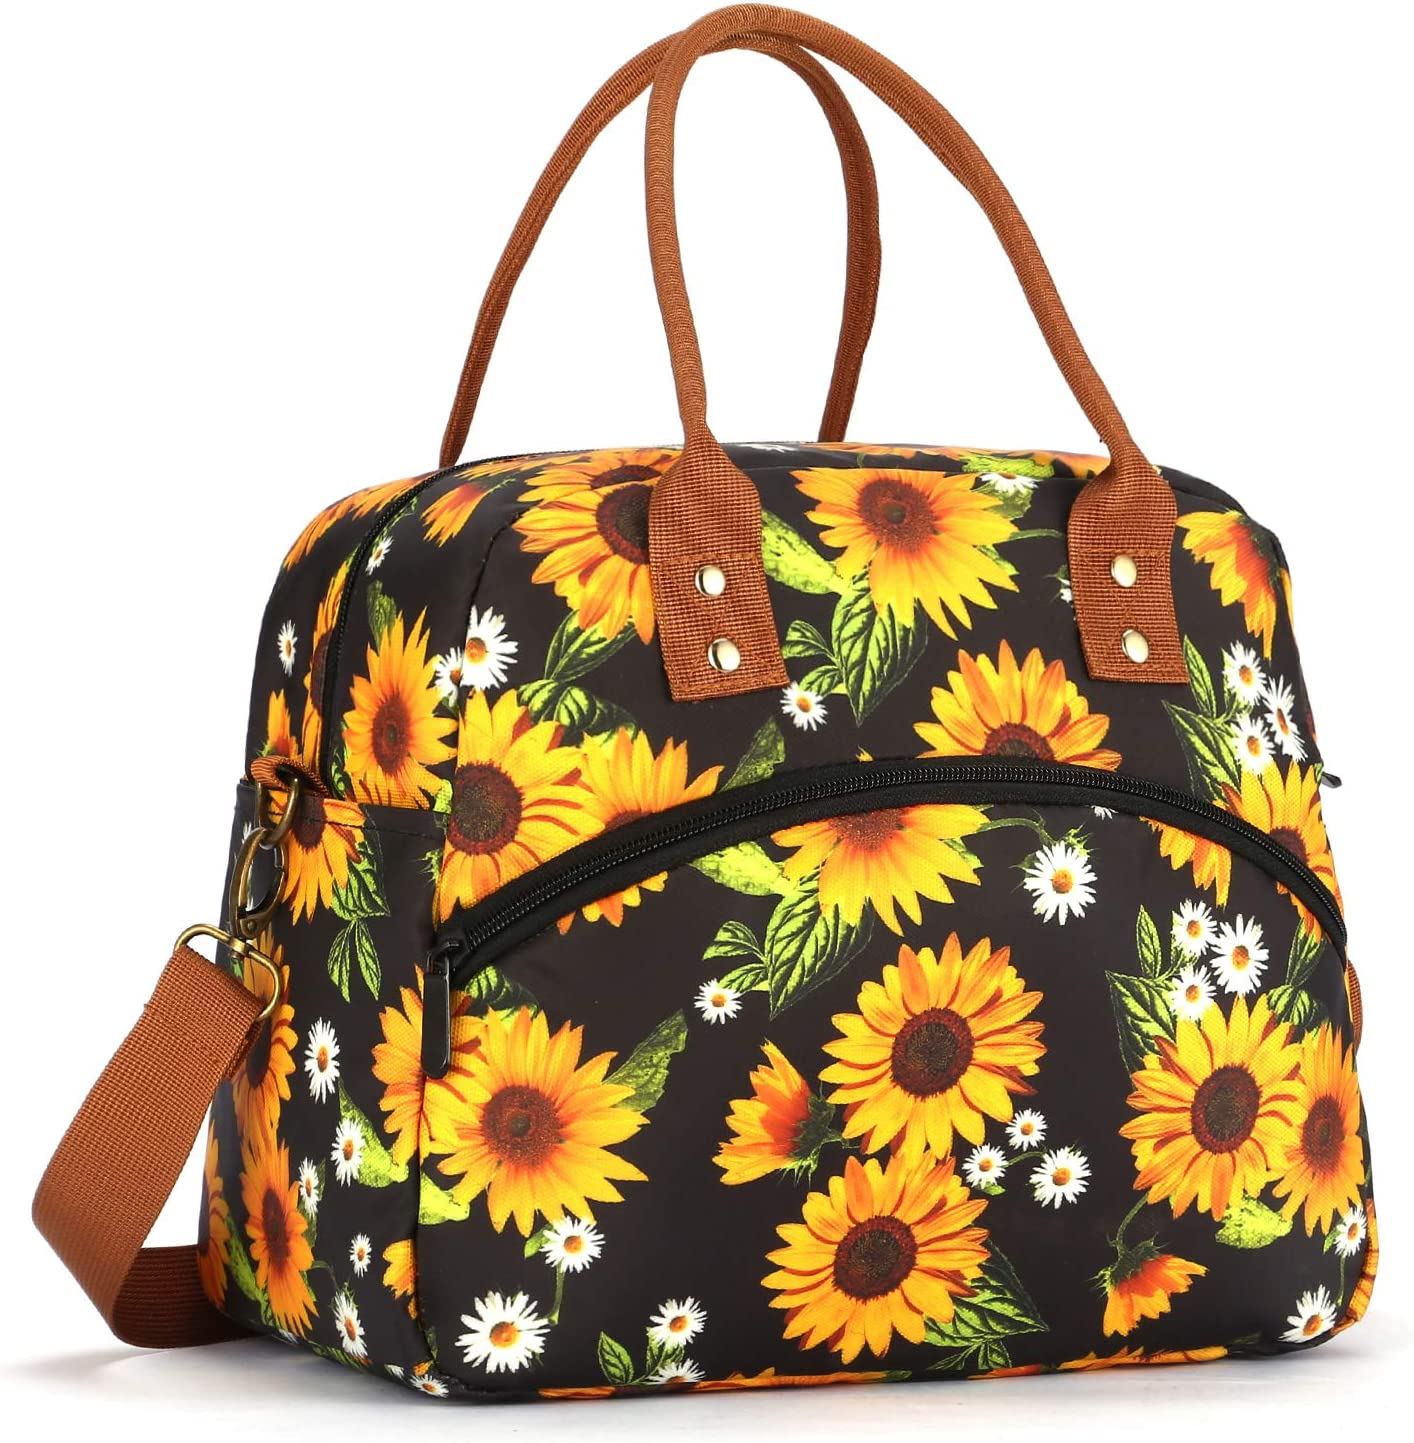 Leakproof Insulated Lunch Bag Reusable Lunch Tote Bag Cooler Bag Lunch Box with Adjustable Shoulder Strap Food Storage Container Meal Prep Organizer for Women Men Adult Work Picnic - Sunflowers